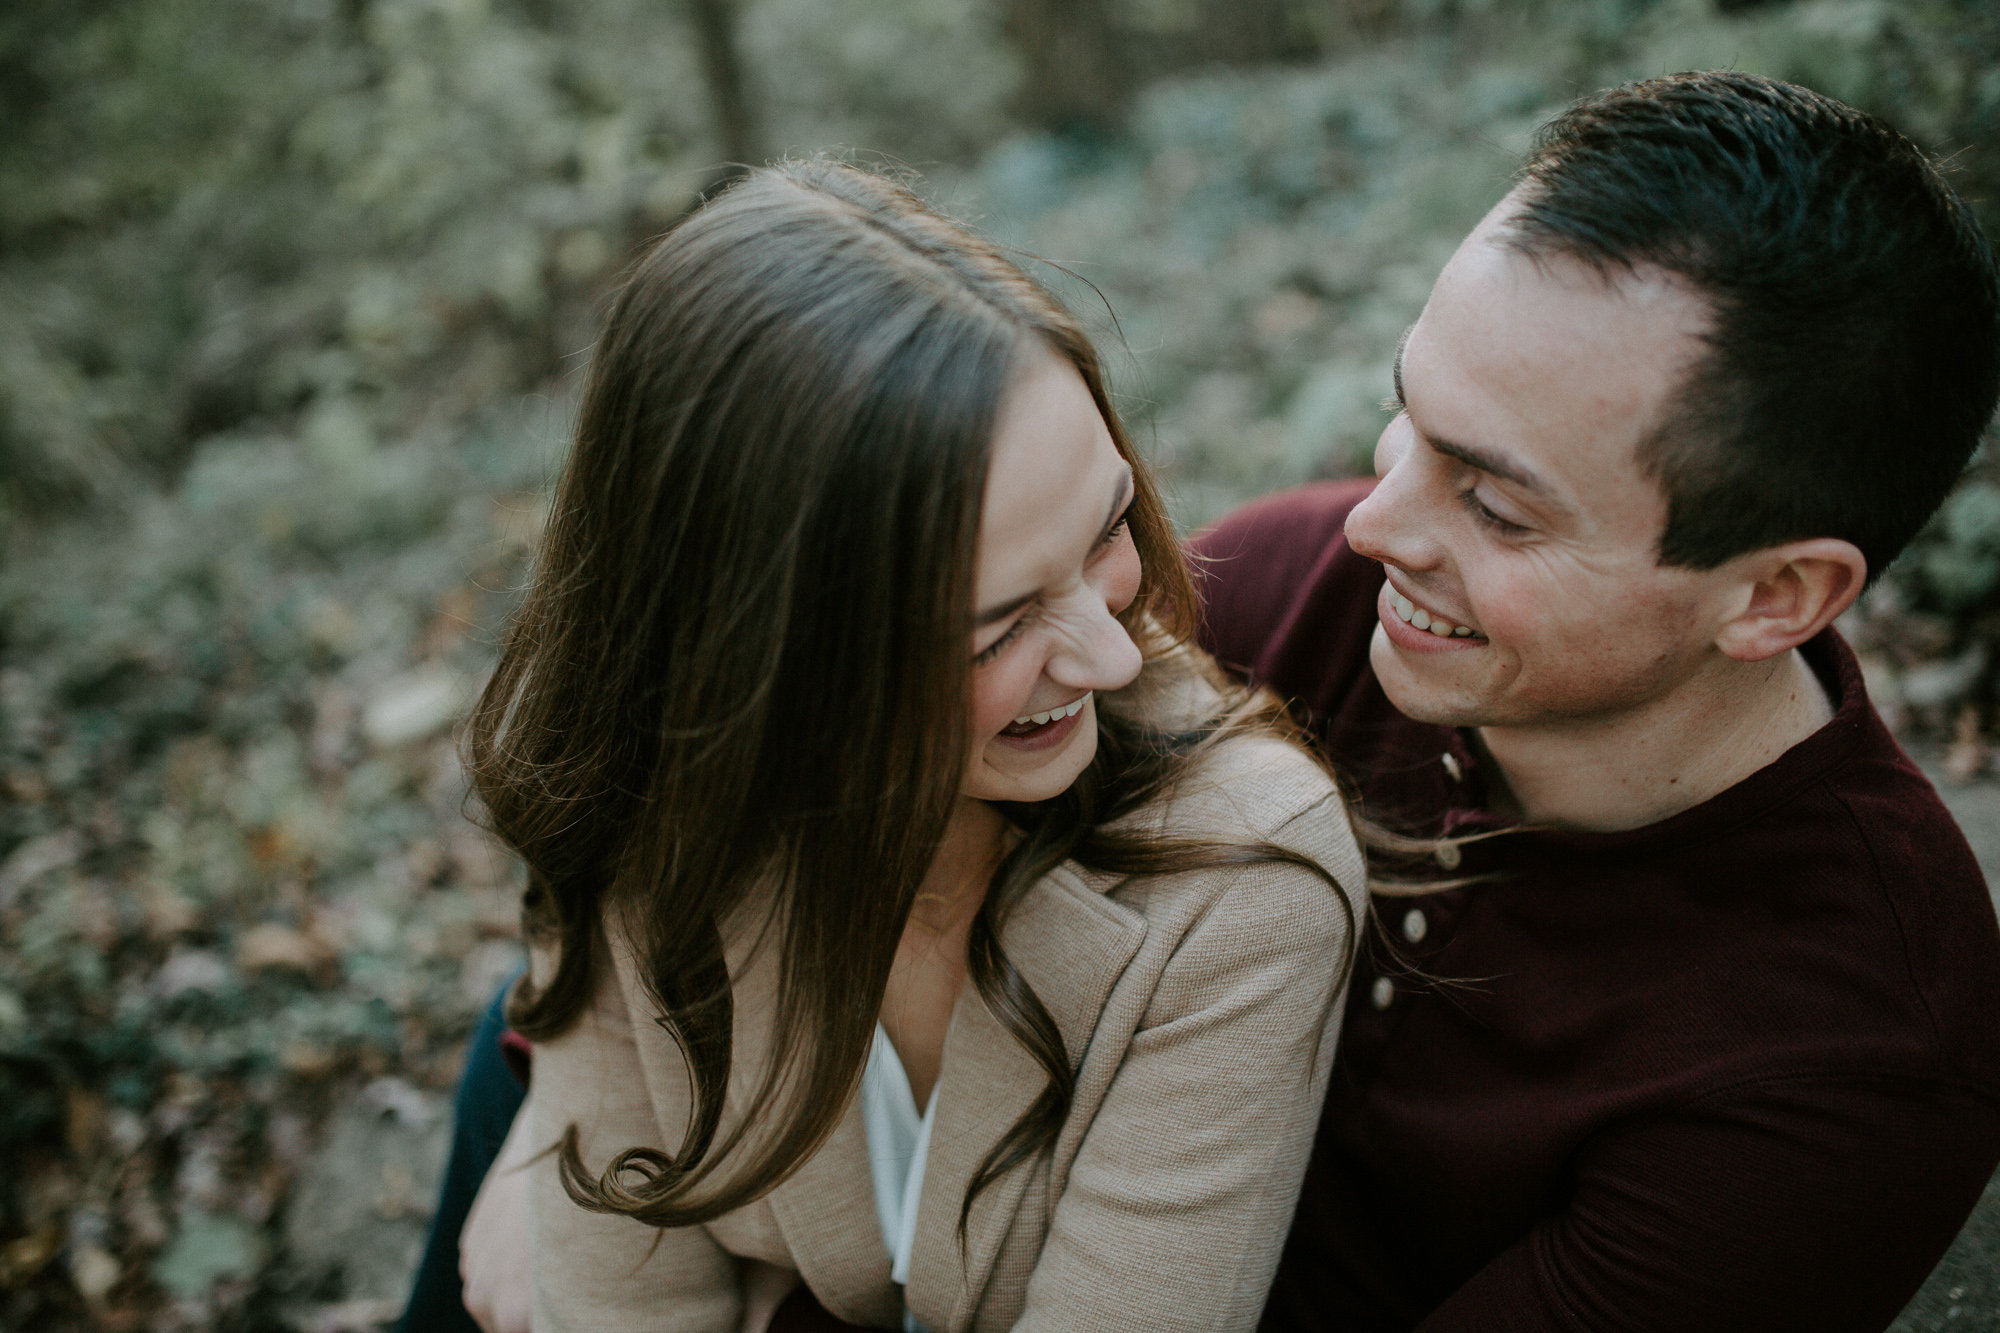 champaign_il_engagement_photography-0032.jpg